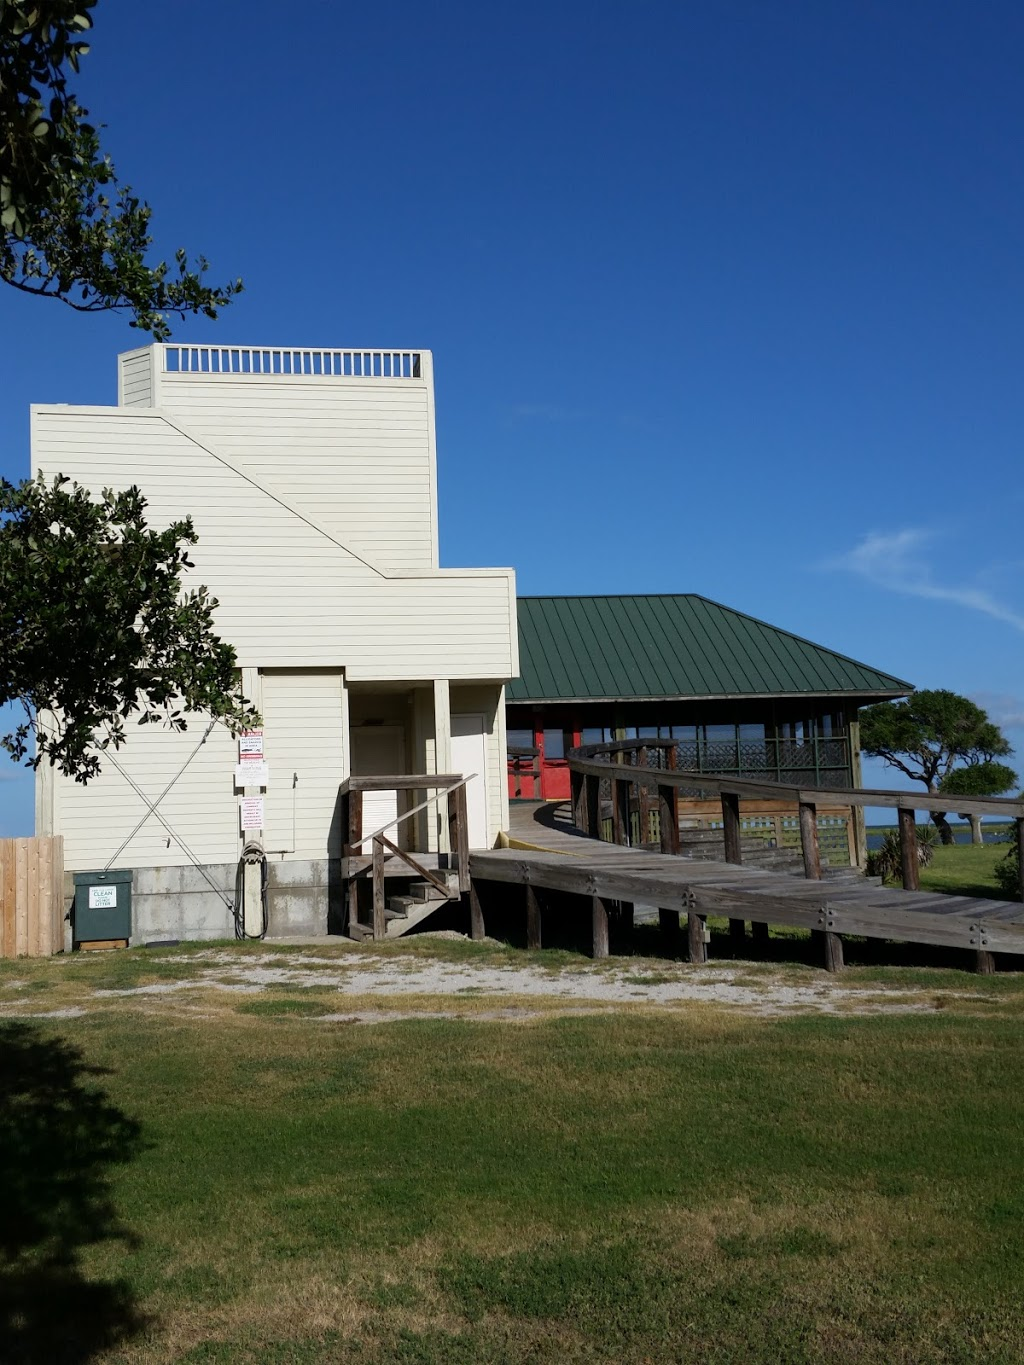 HEB Live Oak Point Lodge - lodging  | Photo 1 of 10 | Address: 5602 Highway 35 North, Rockport, TX 78382, USA | Phone: (361) 729-7108